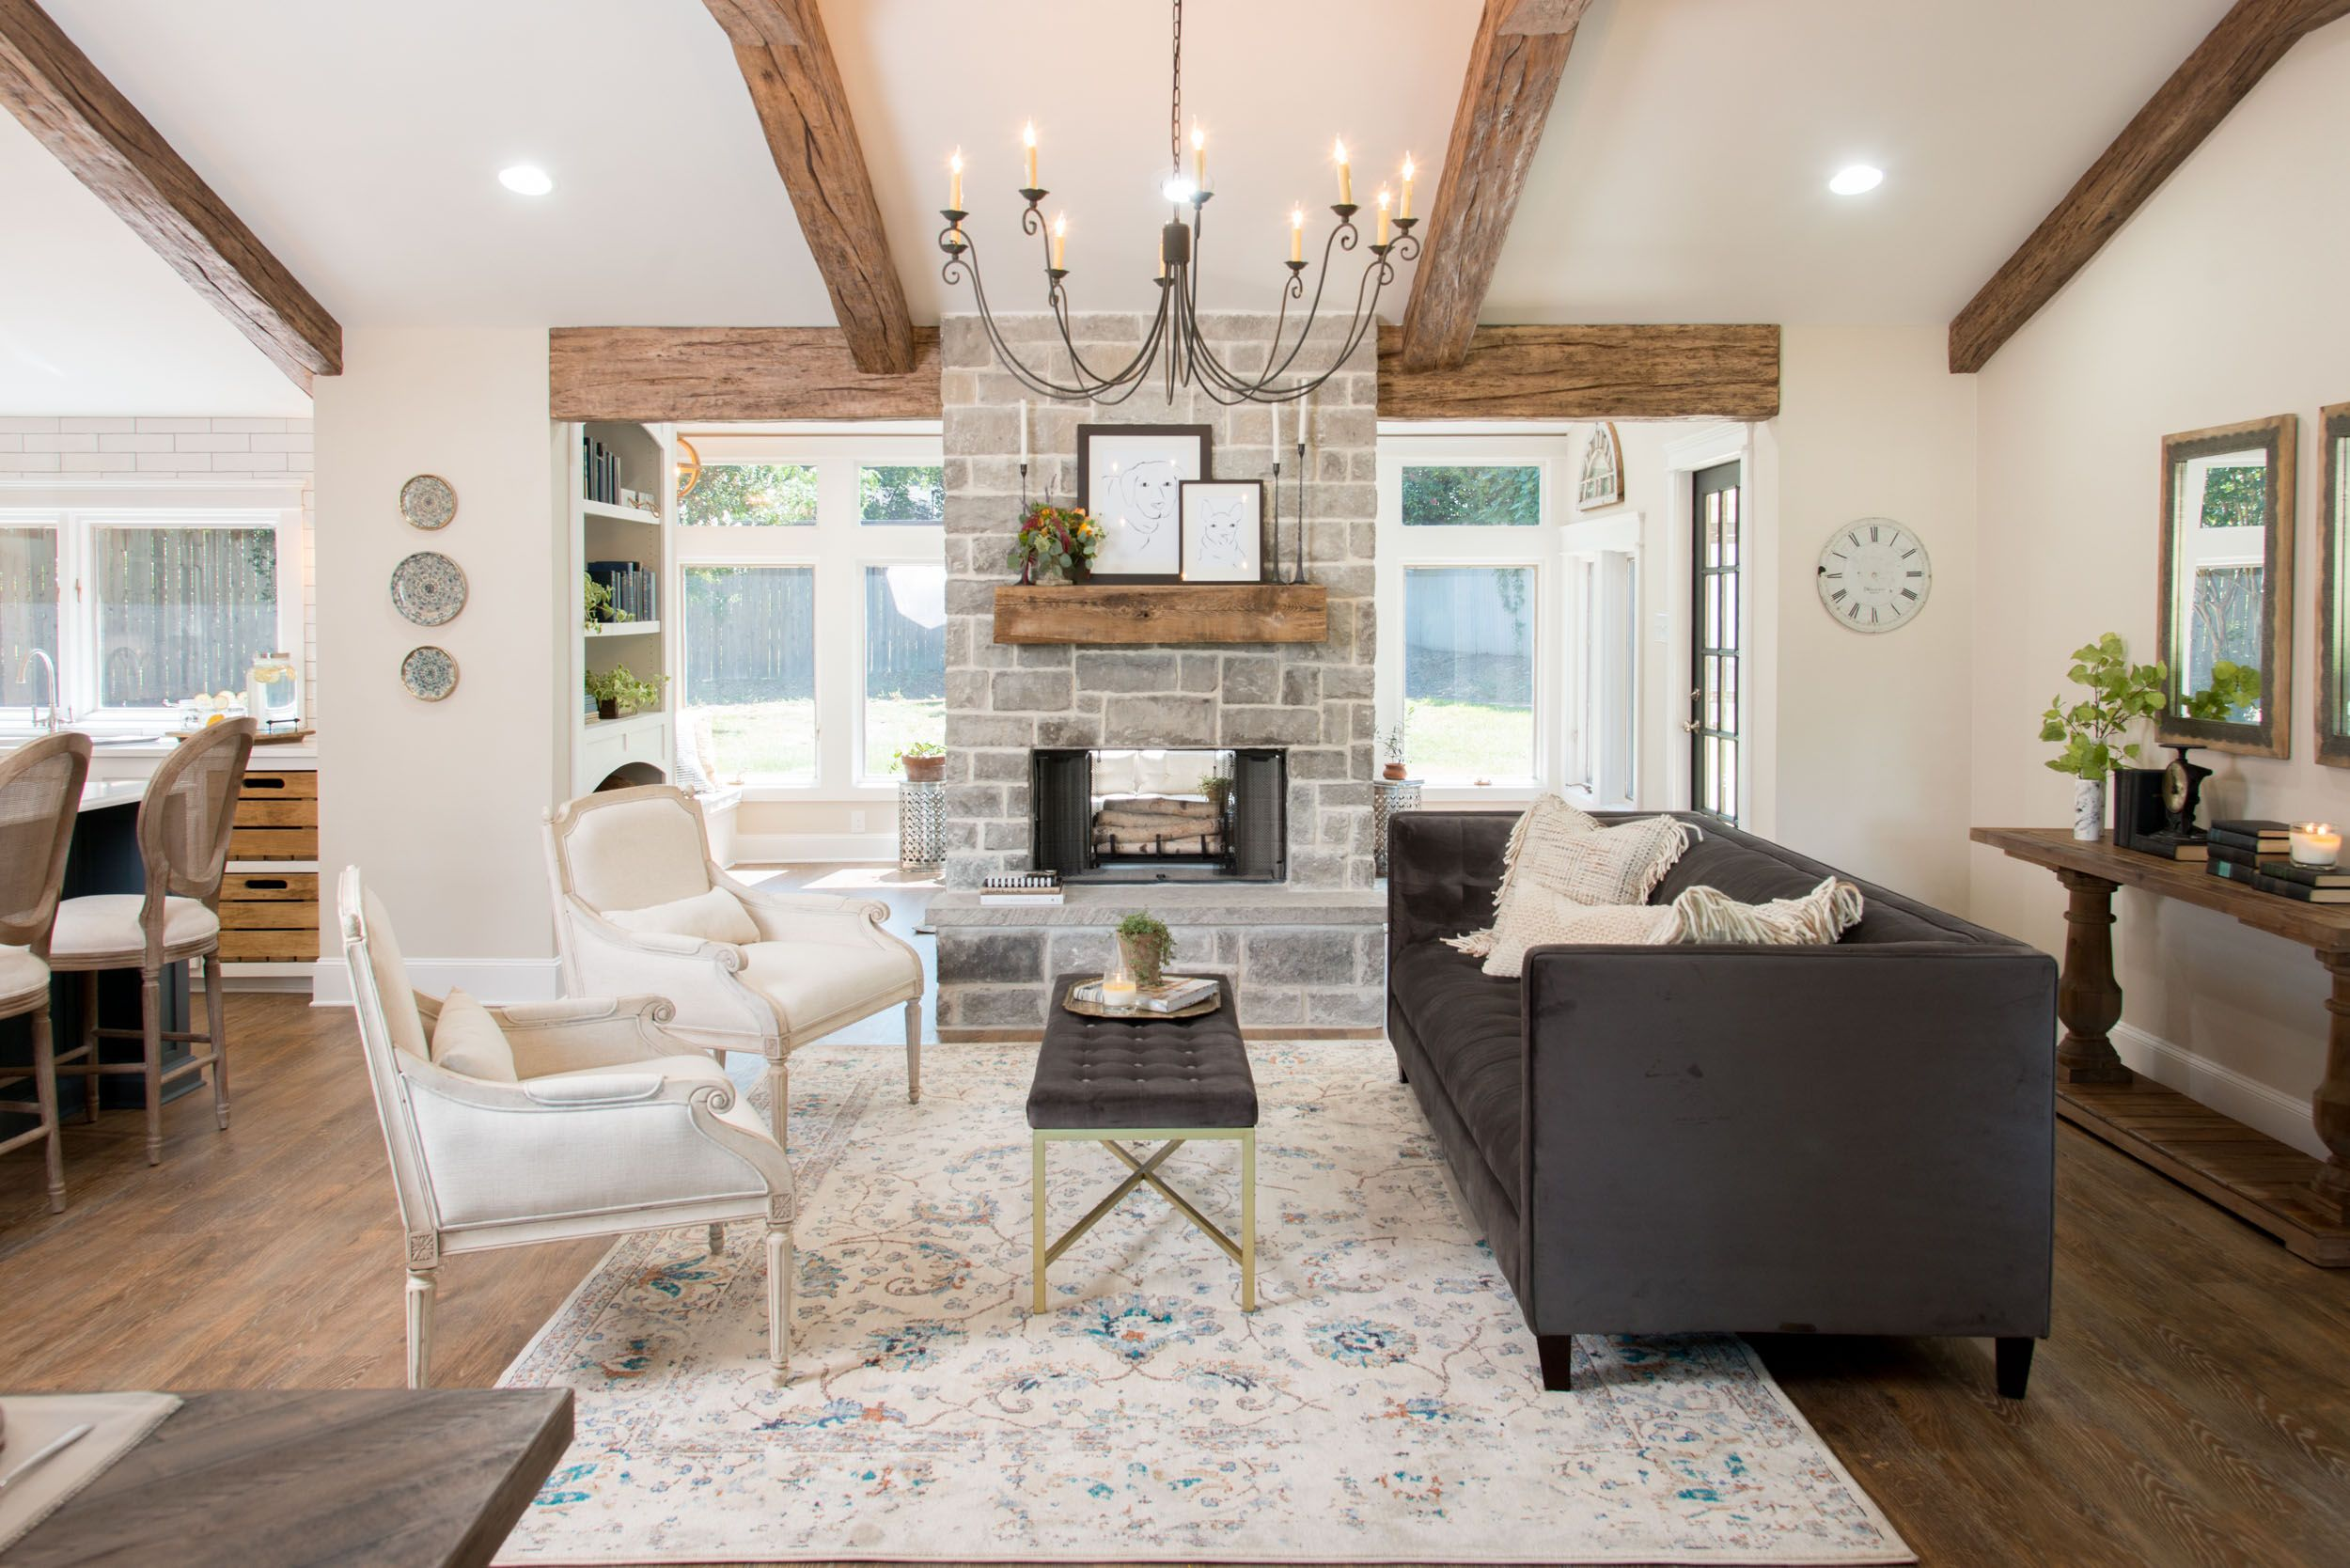 Season 4 Episode 1 In 2019 Joanna Gaines Living Room